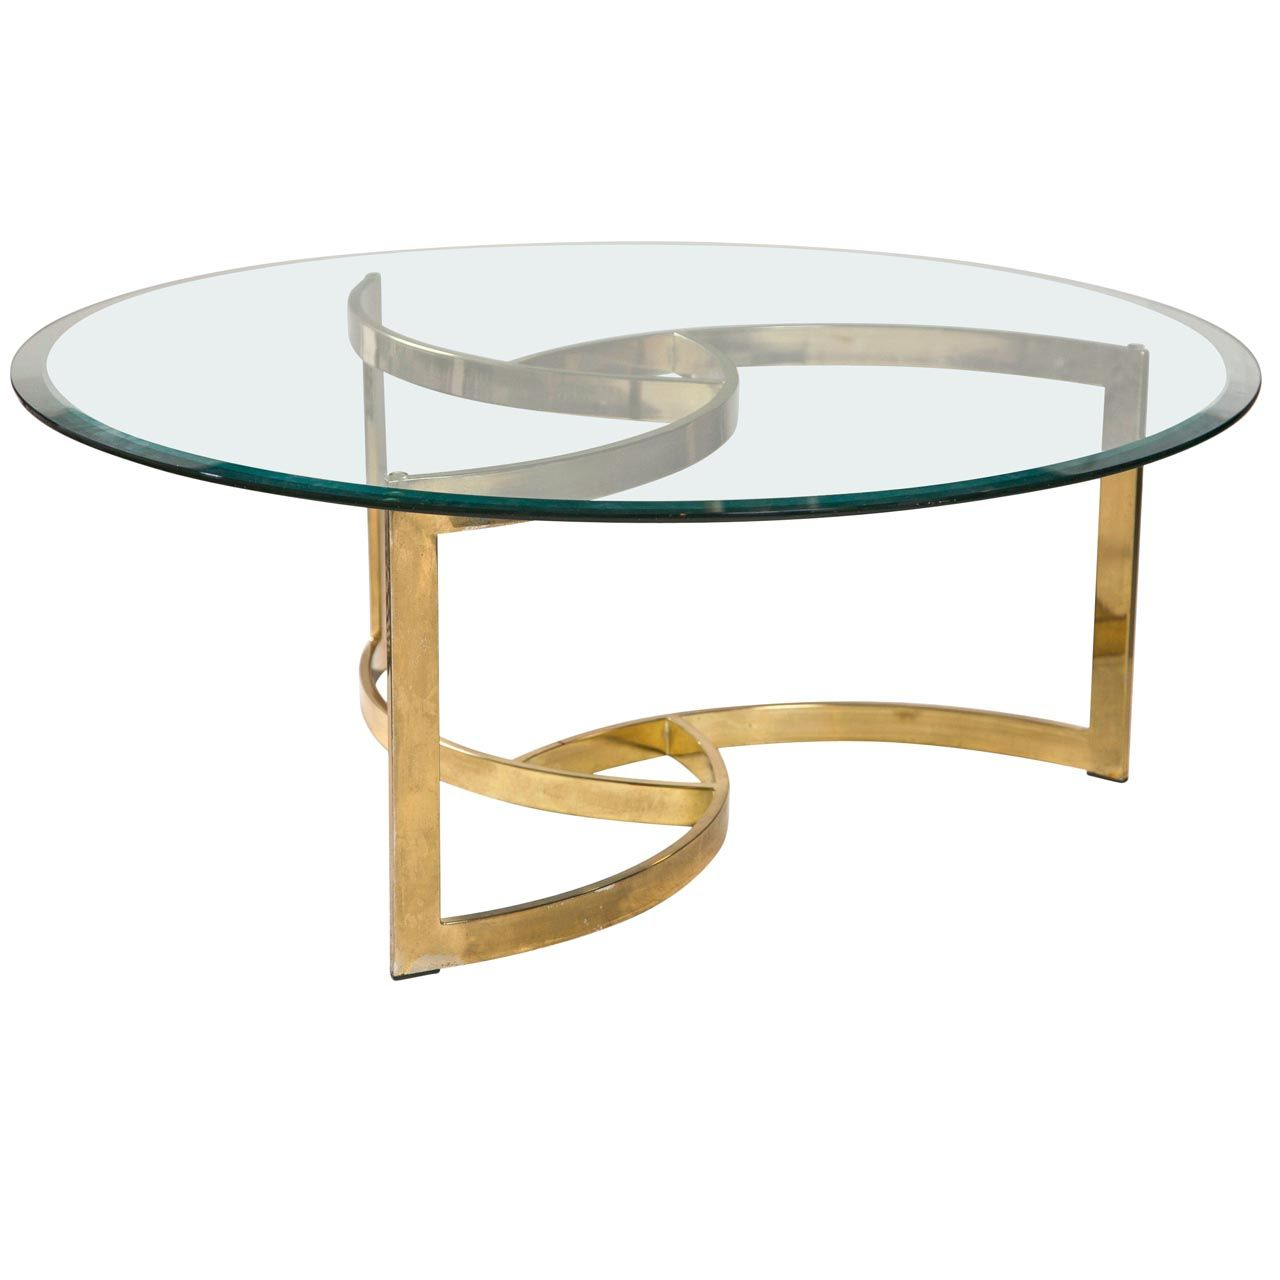 Glass Coffee Table Gold Legs | Coffee Tables | Table, Coffee Table In Elke Glass Console Tables With Brass Base (View 8 of 20)